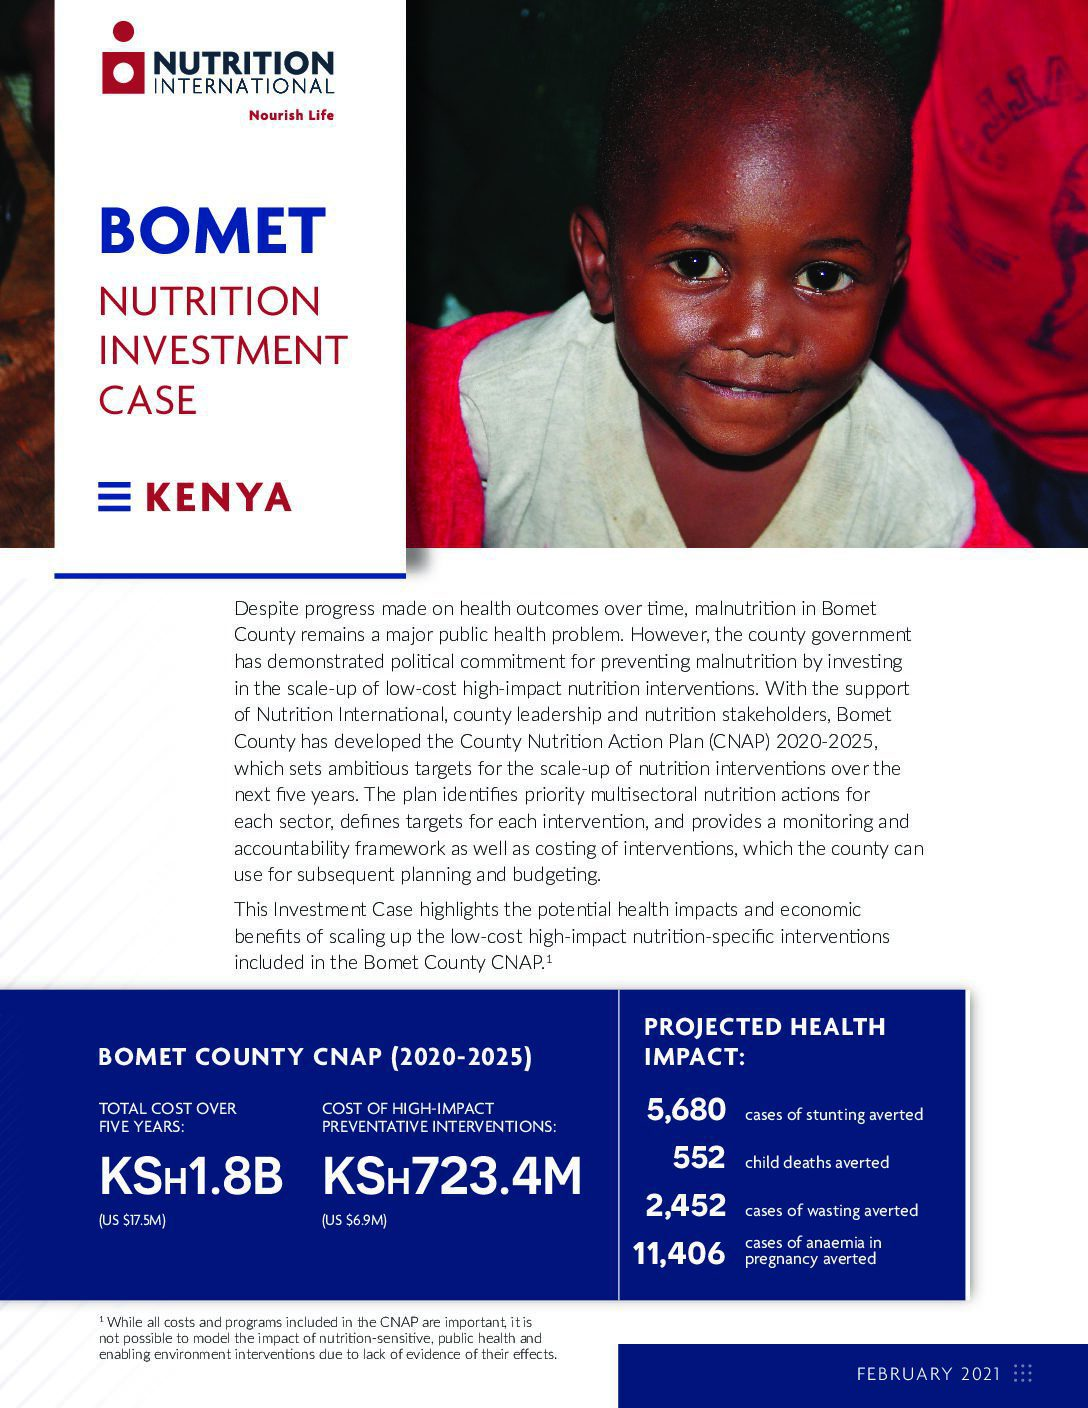 Bomet County Investment Case thumbnail